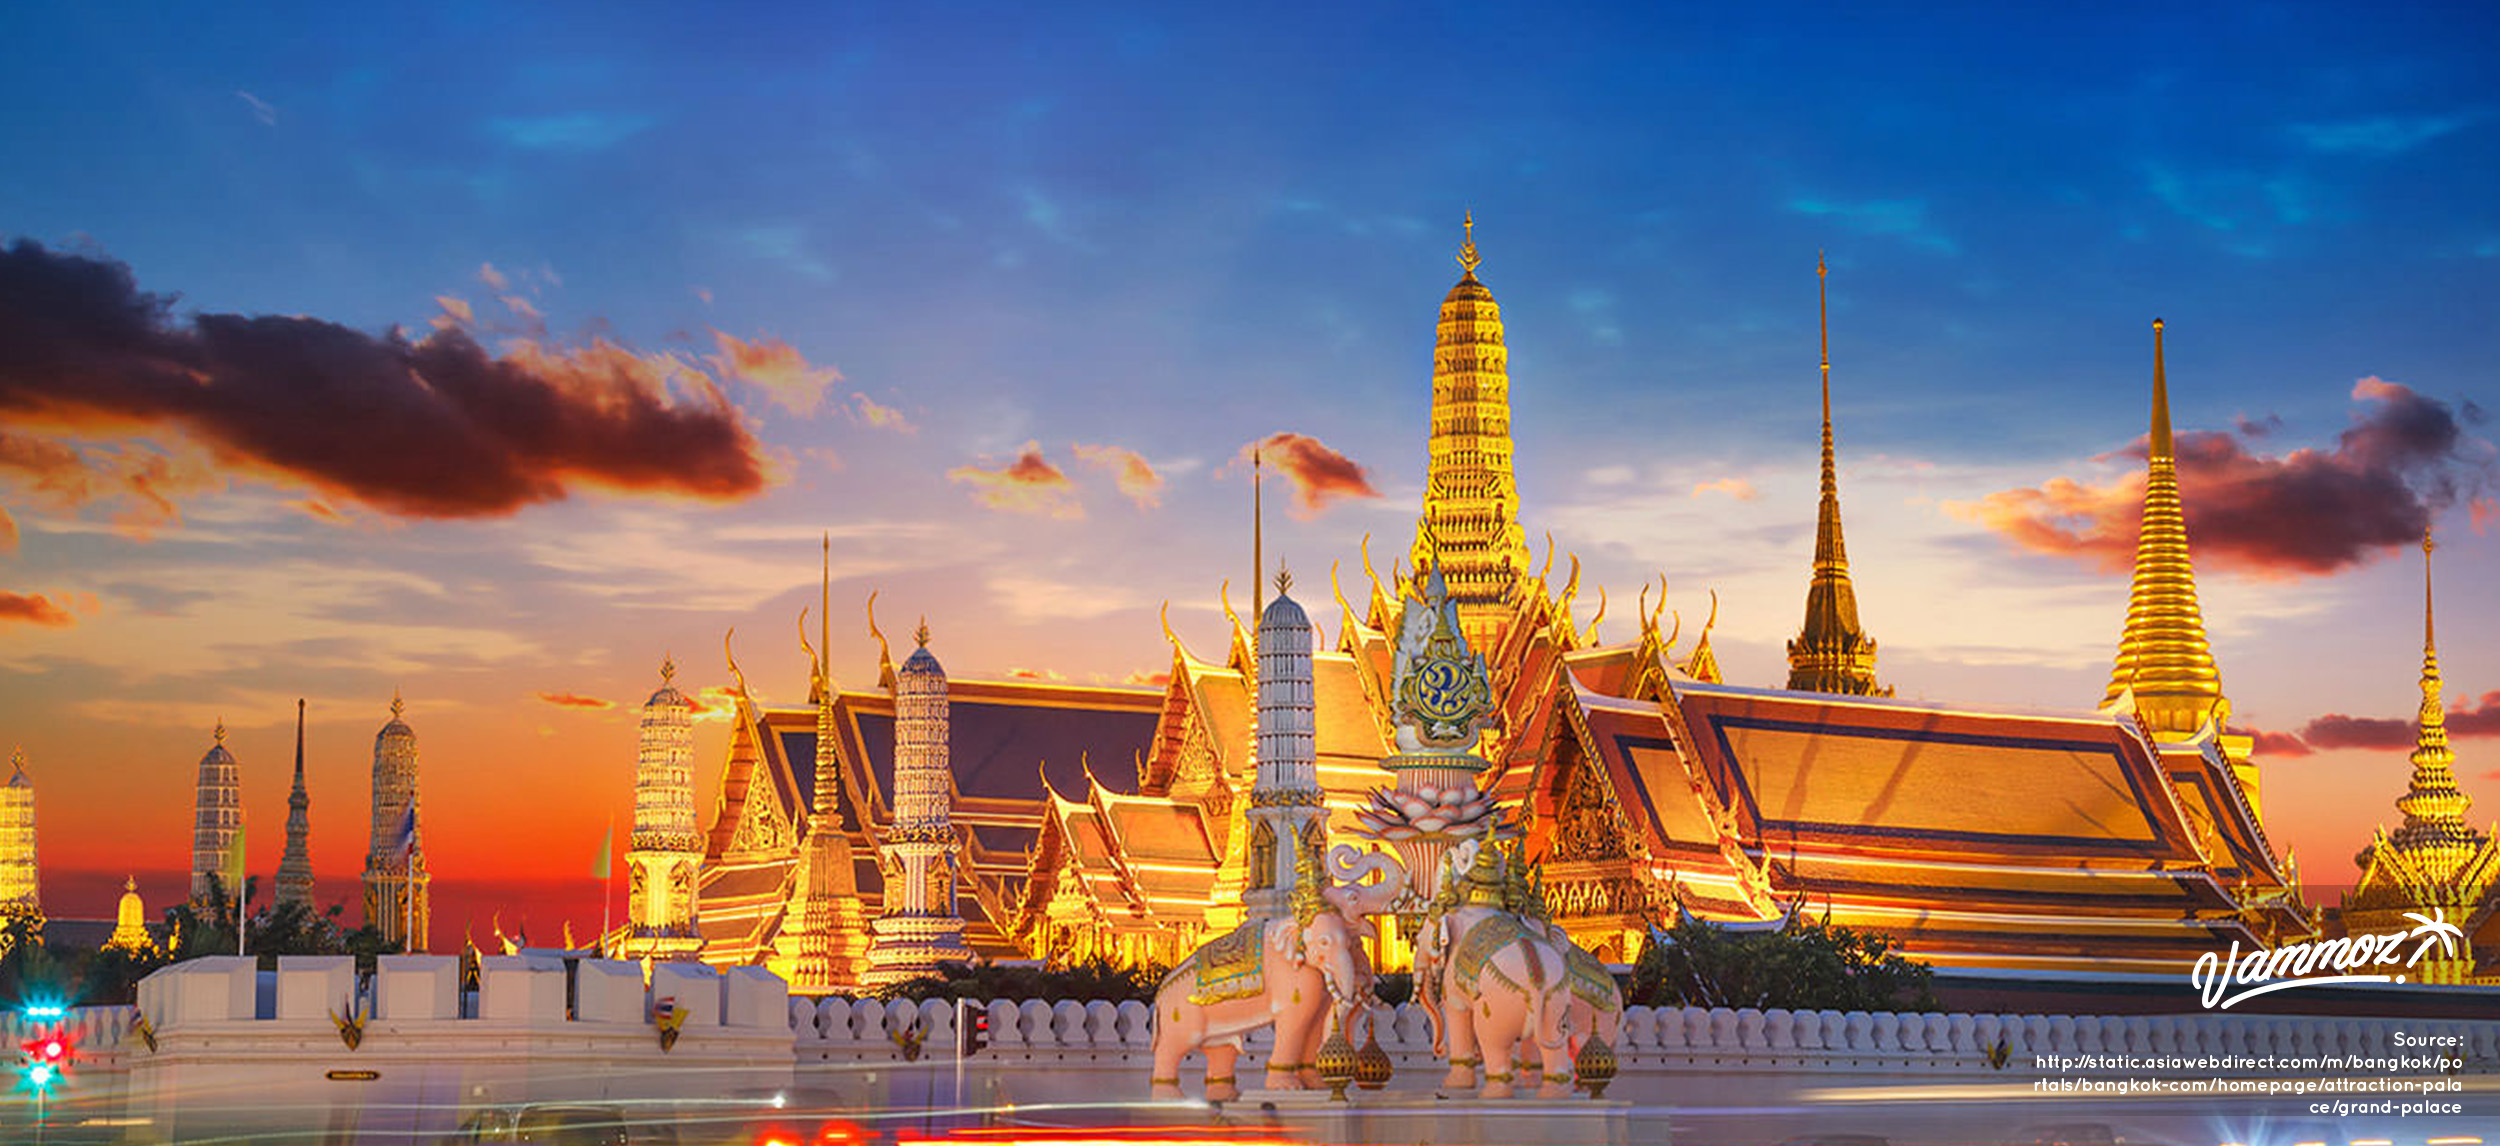 The Greatness of Grand Palace